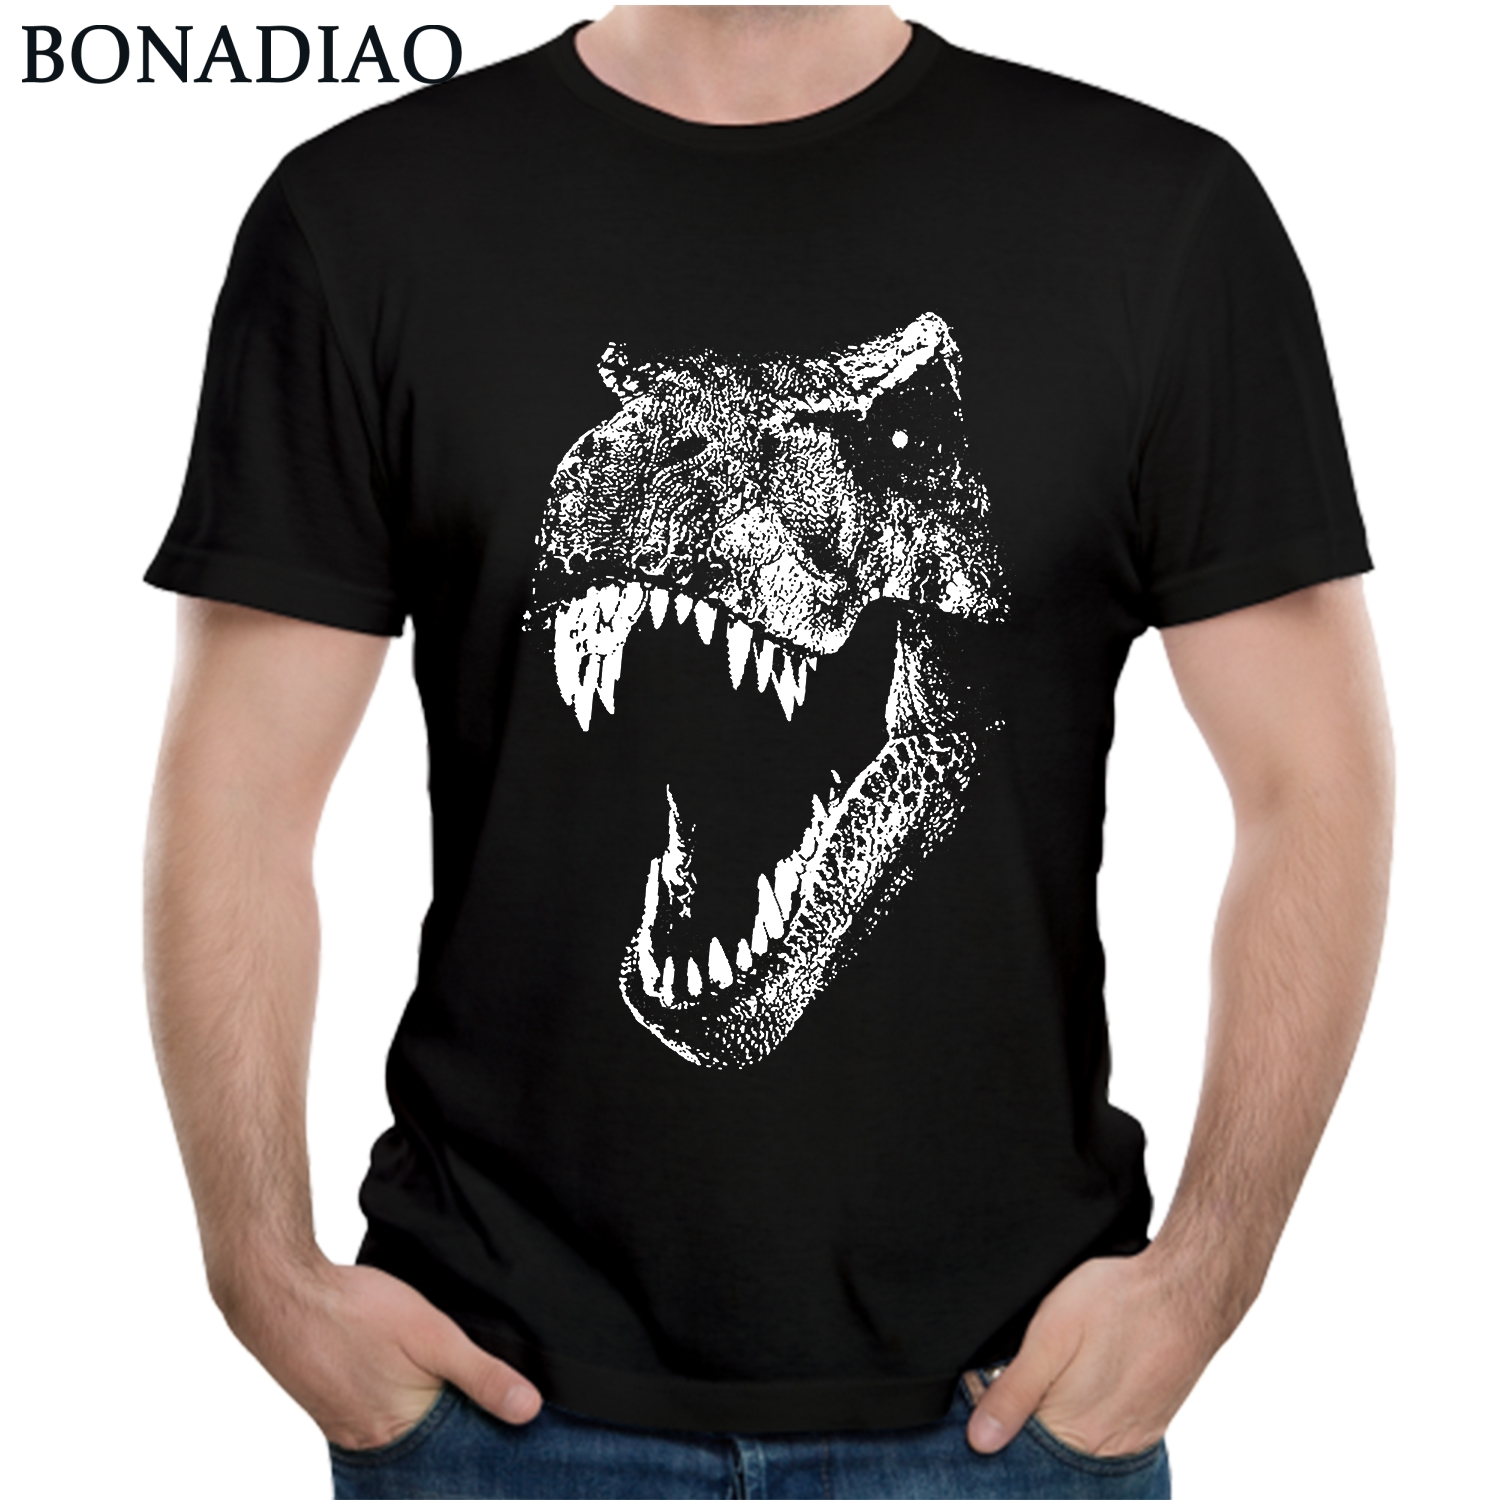 Jurassic Park Tees 2018 Awesome Design Dinosaur Jurassic Park   T     Shirt   For Man Cotton Homme Tee   Shirt   Camiseta